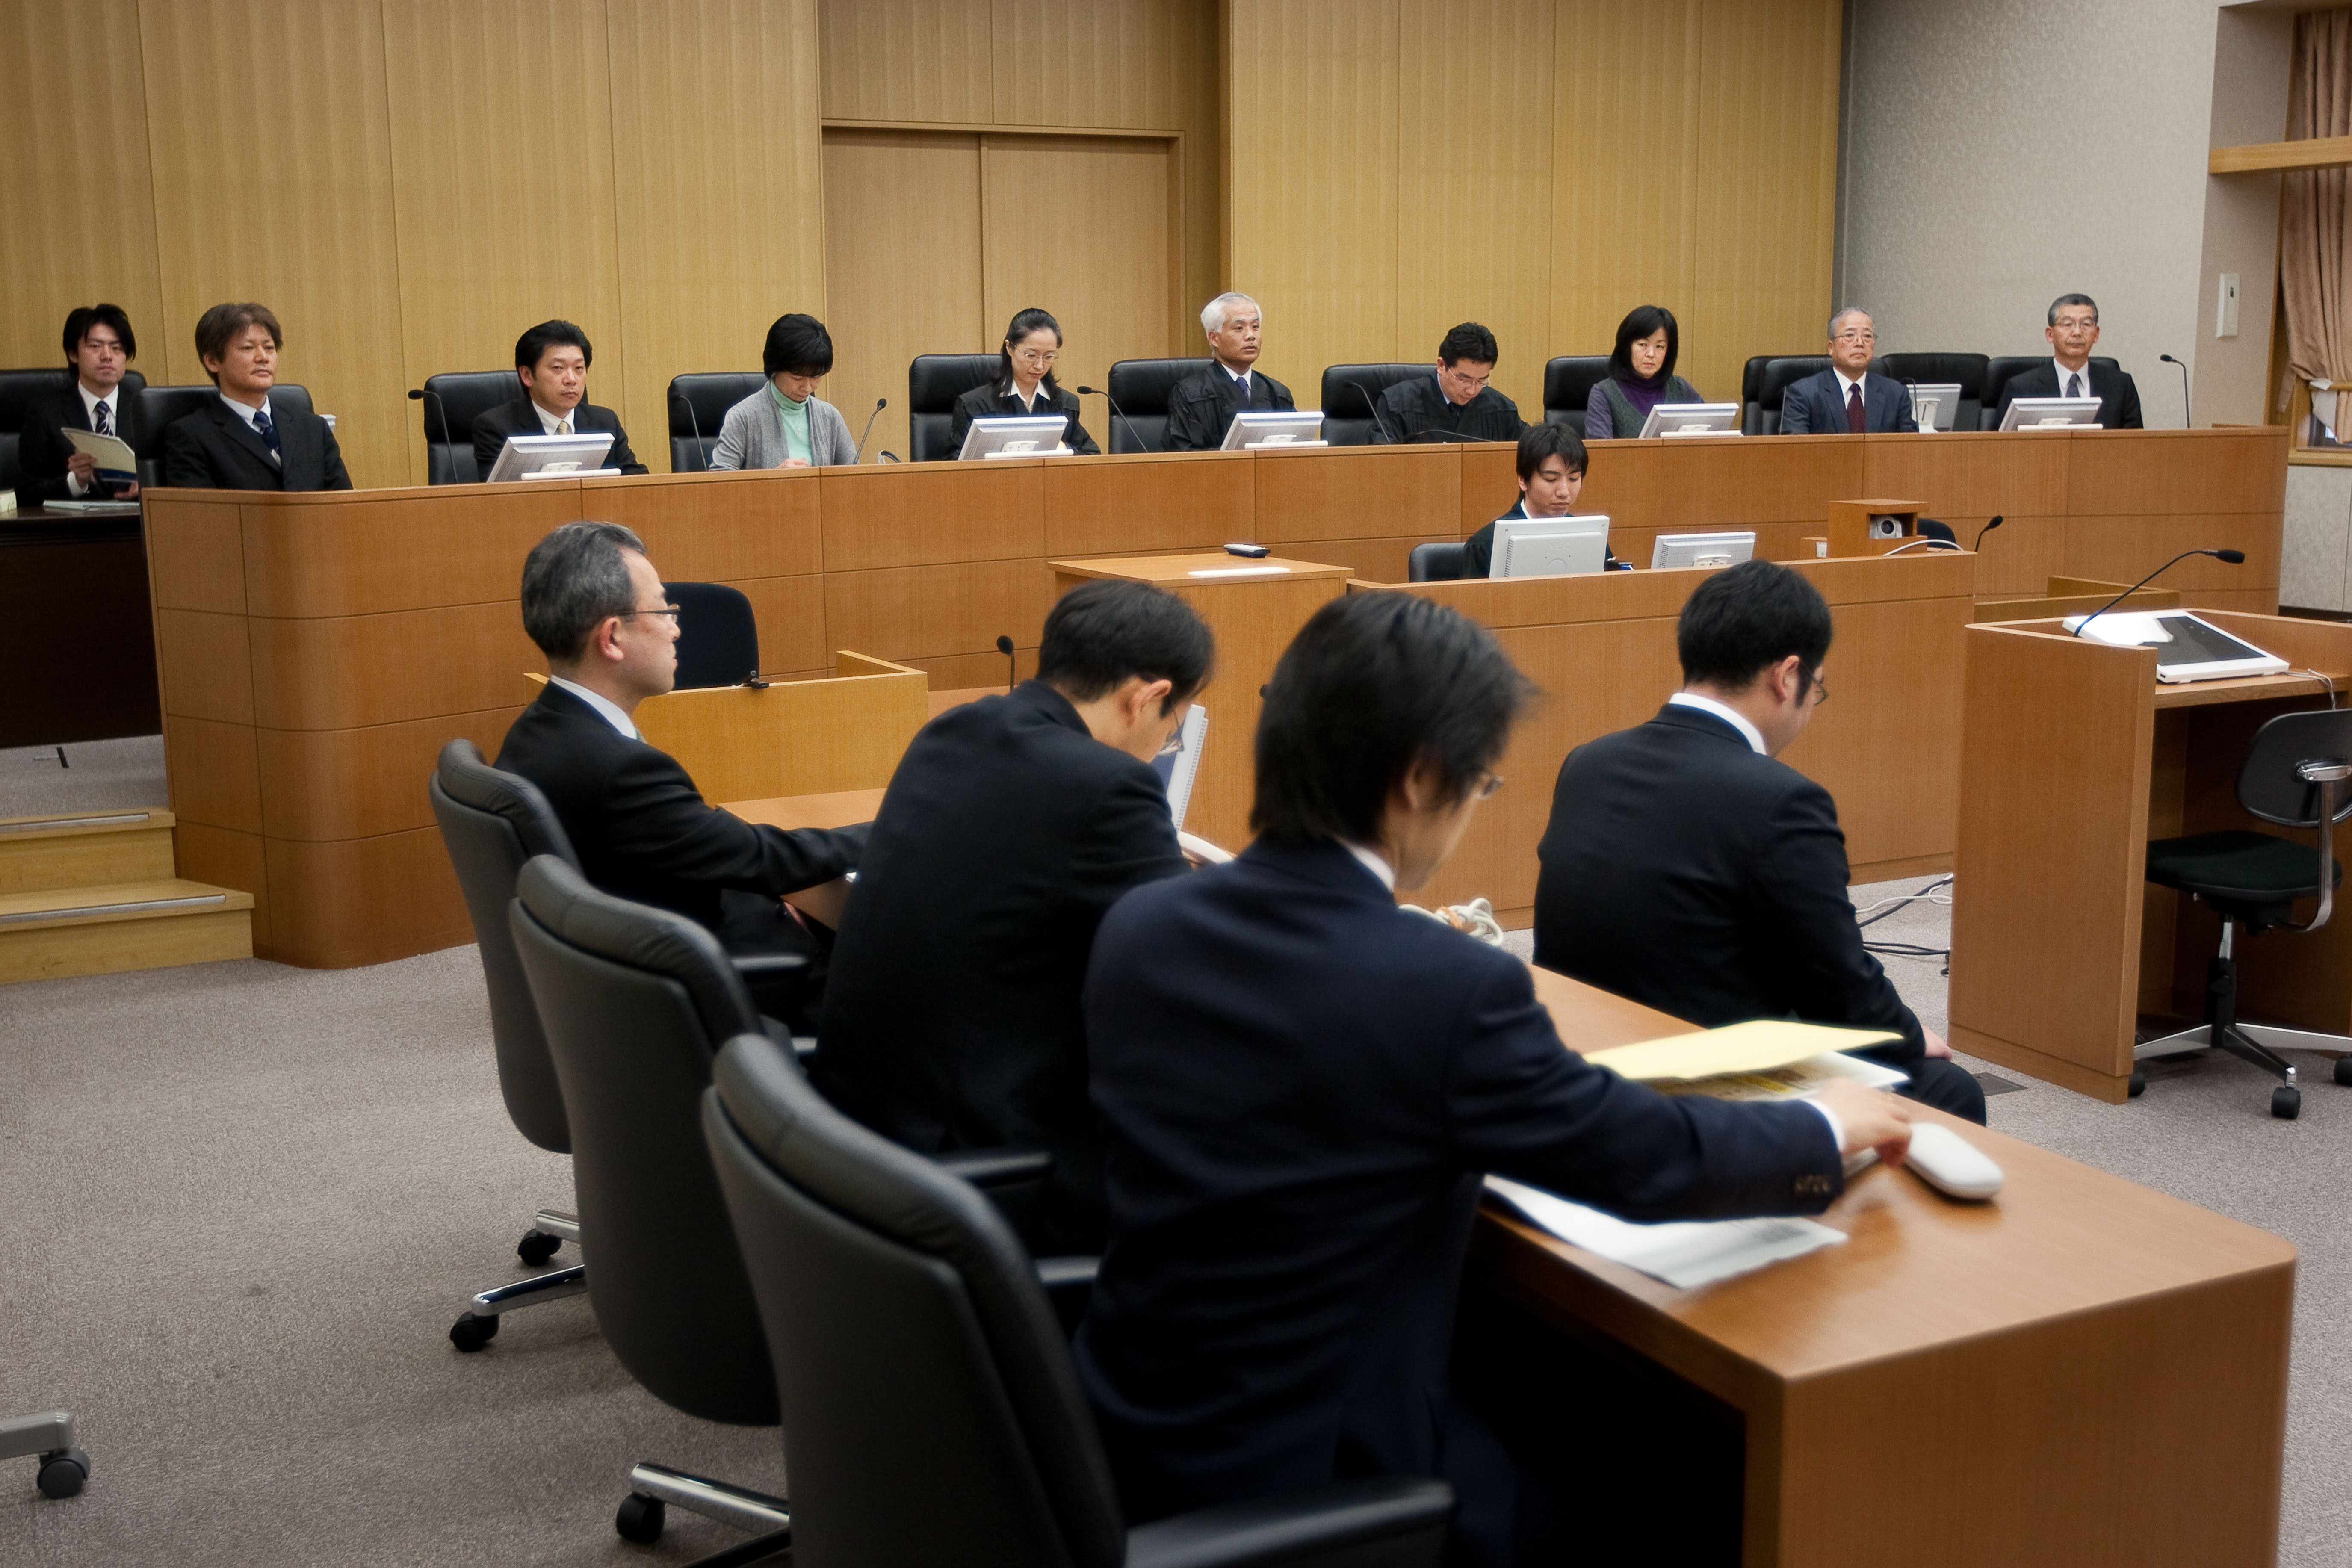 Why are Japanese citizens refusing to show up for jury duty? | South